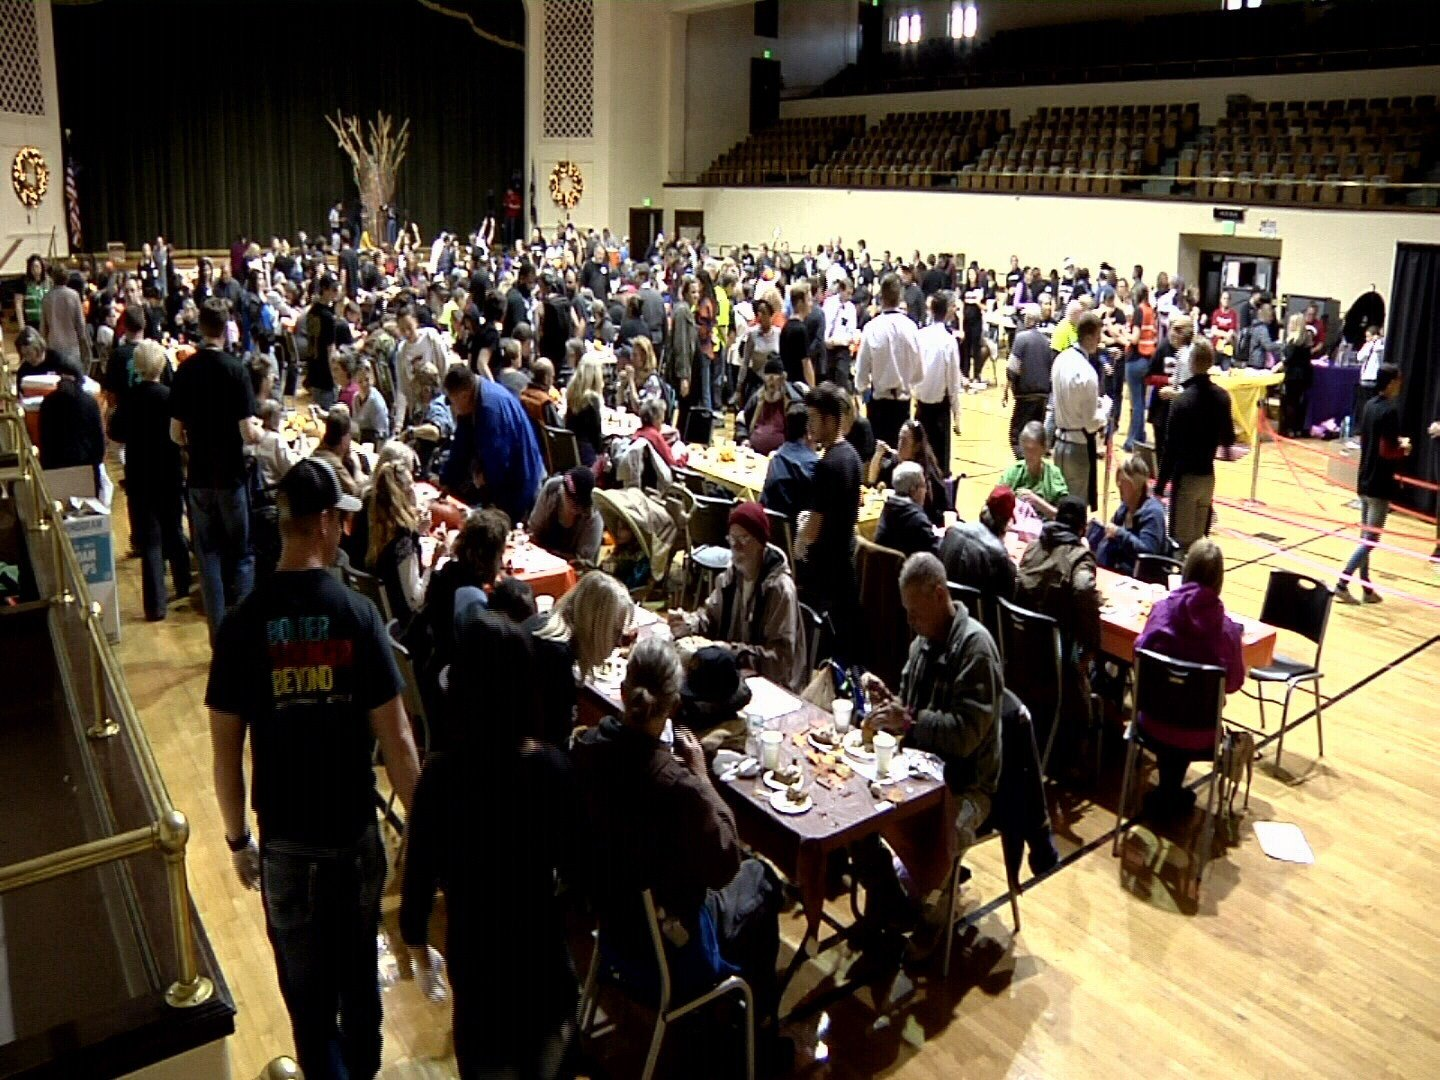 Fresno Rescue Mission feeds hundreds at annual Thanksgiving lunch